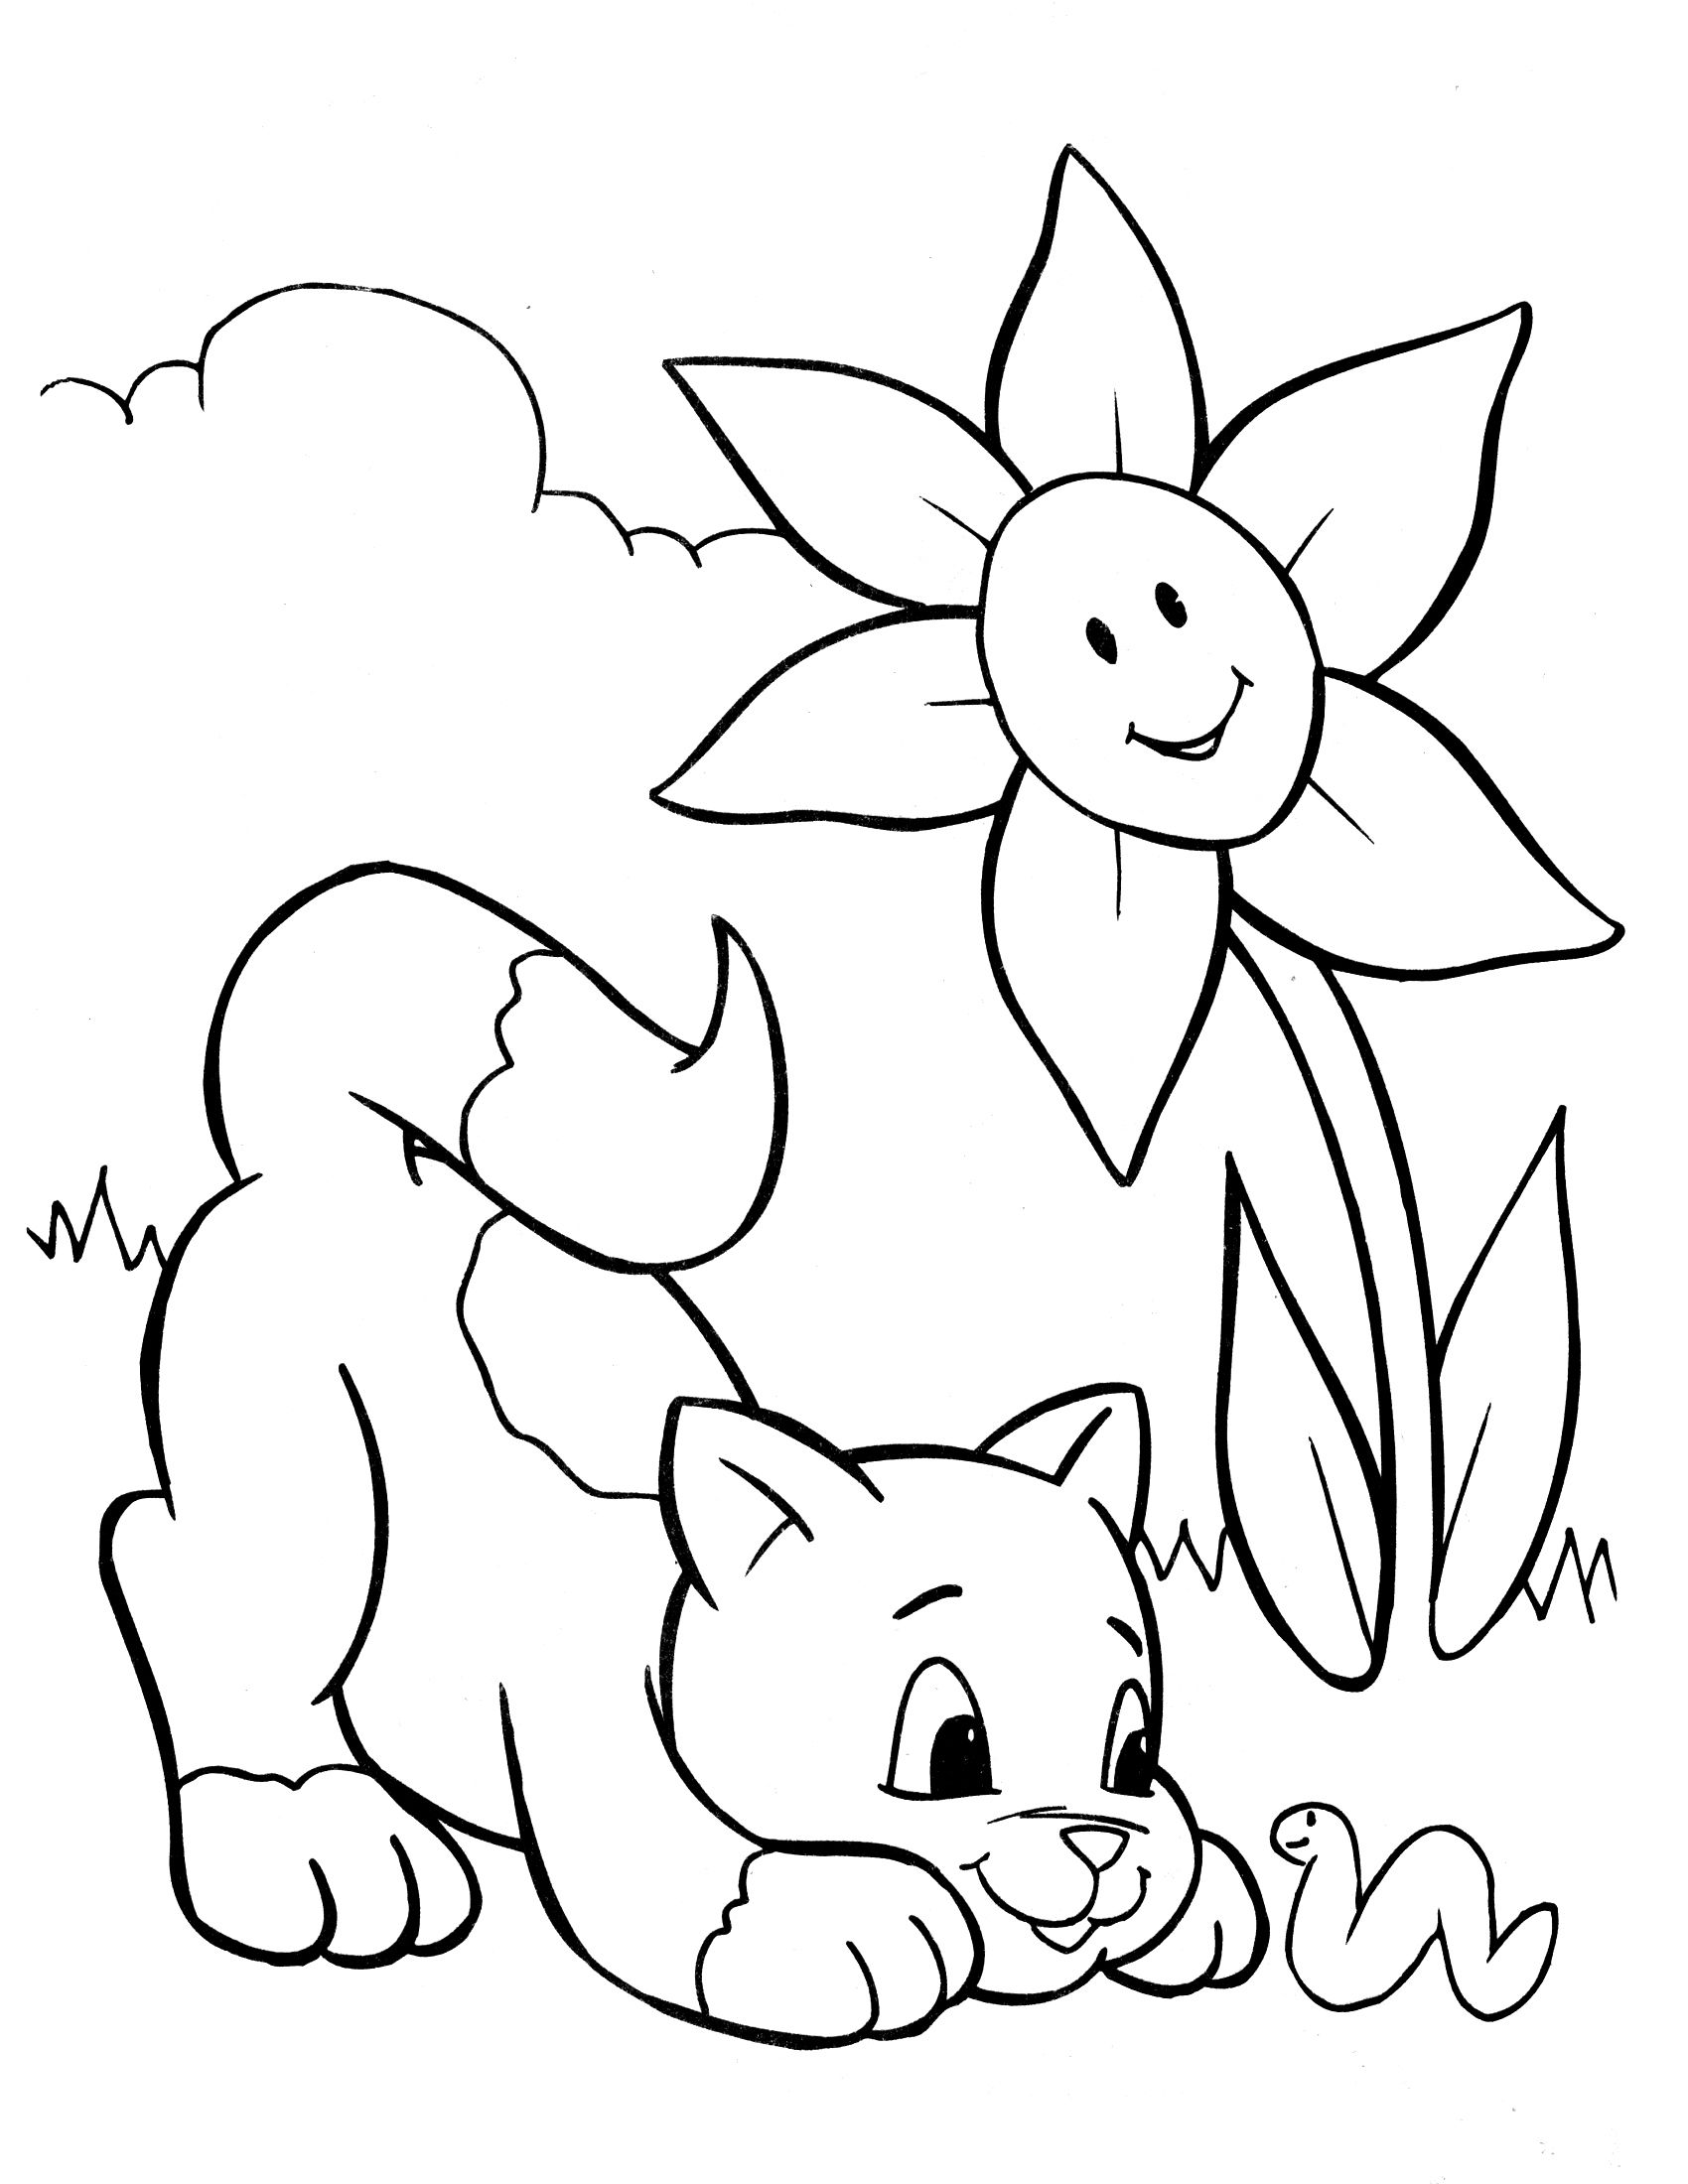 Wonder Park Coloring Pages Best Coloring Pages For Kids Toddler Coloring Book Monster Coloring Pages Bee Coloring Pages